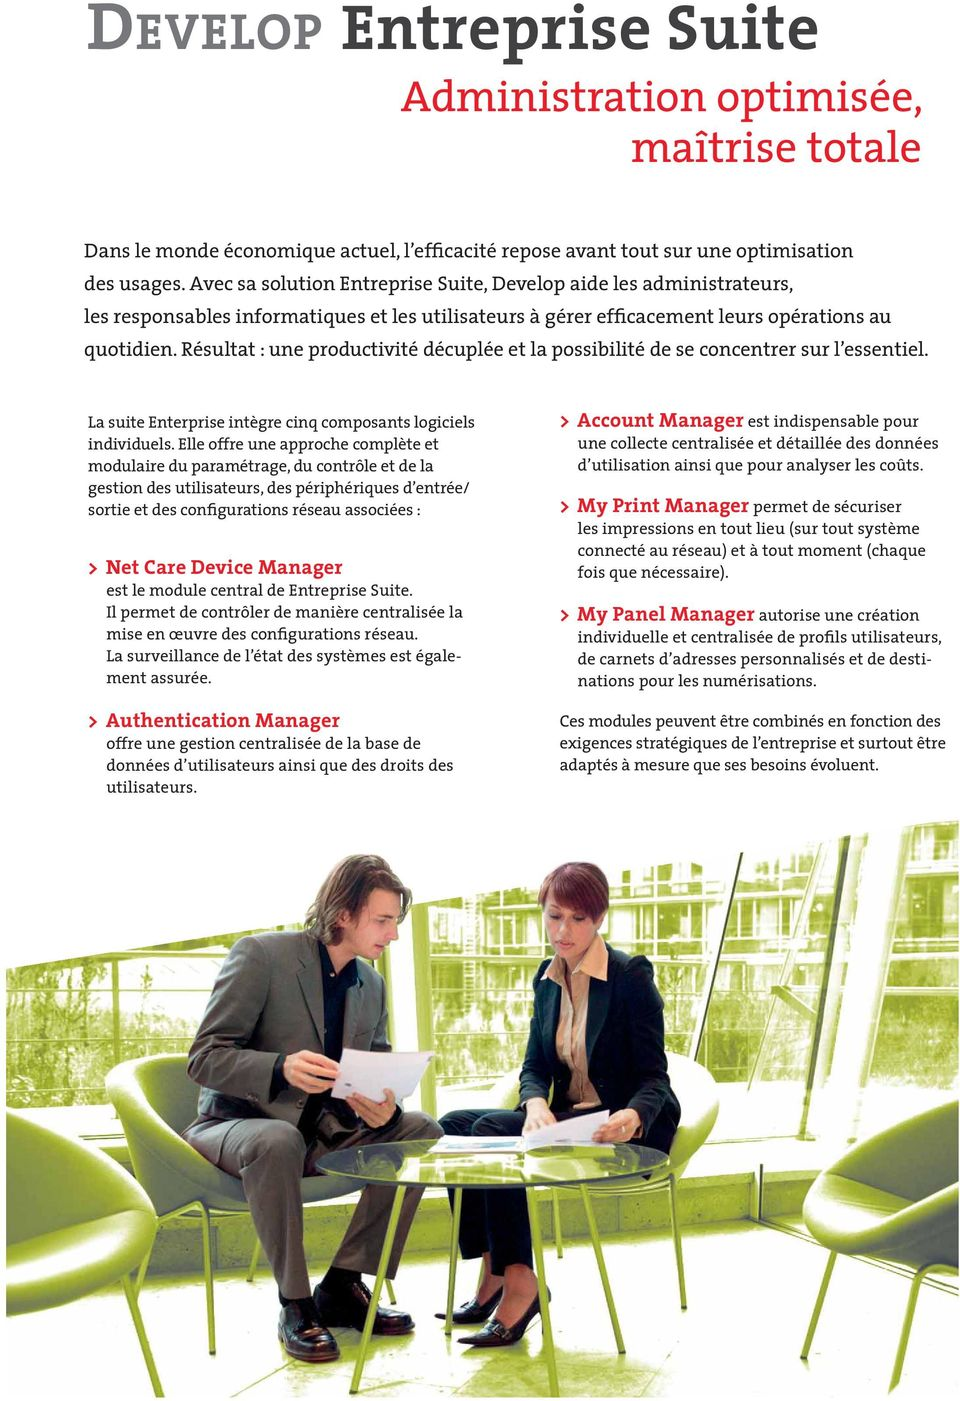 administrators, Avec sa solution IT specialists Entreprise Suite, users Develop streamline aide their les administrateurs, work, minimise their efforts les achieve responsables more in less